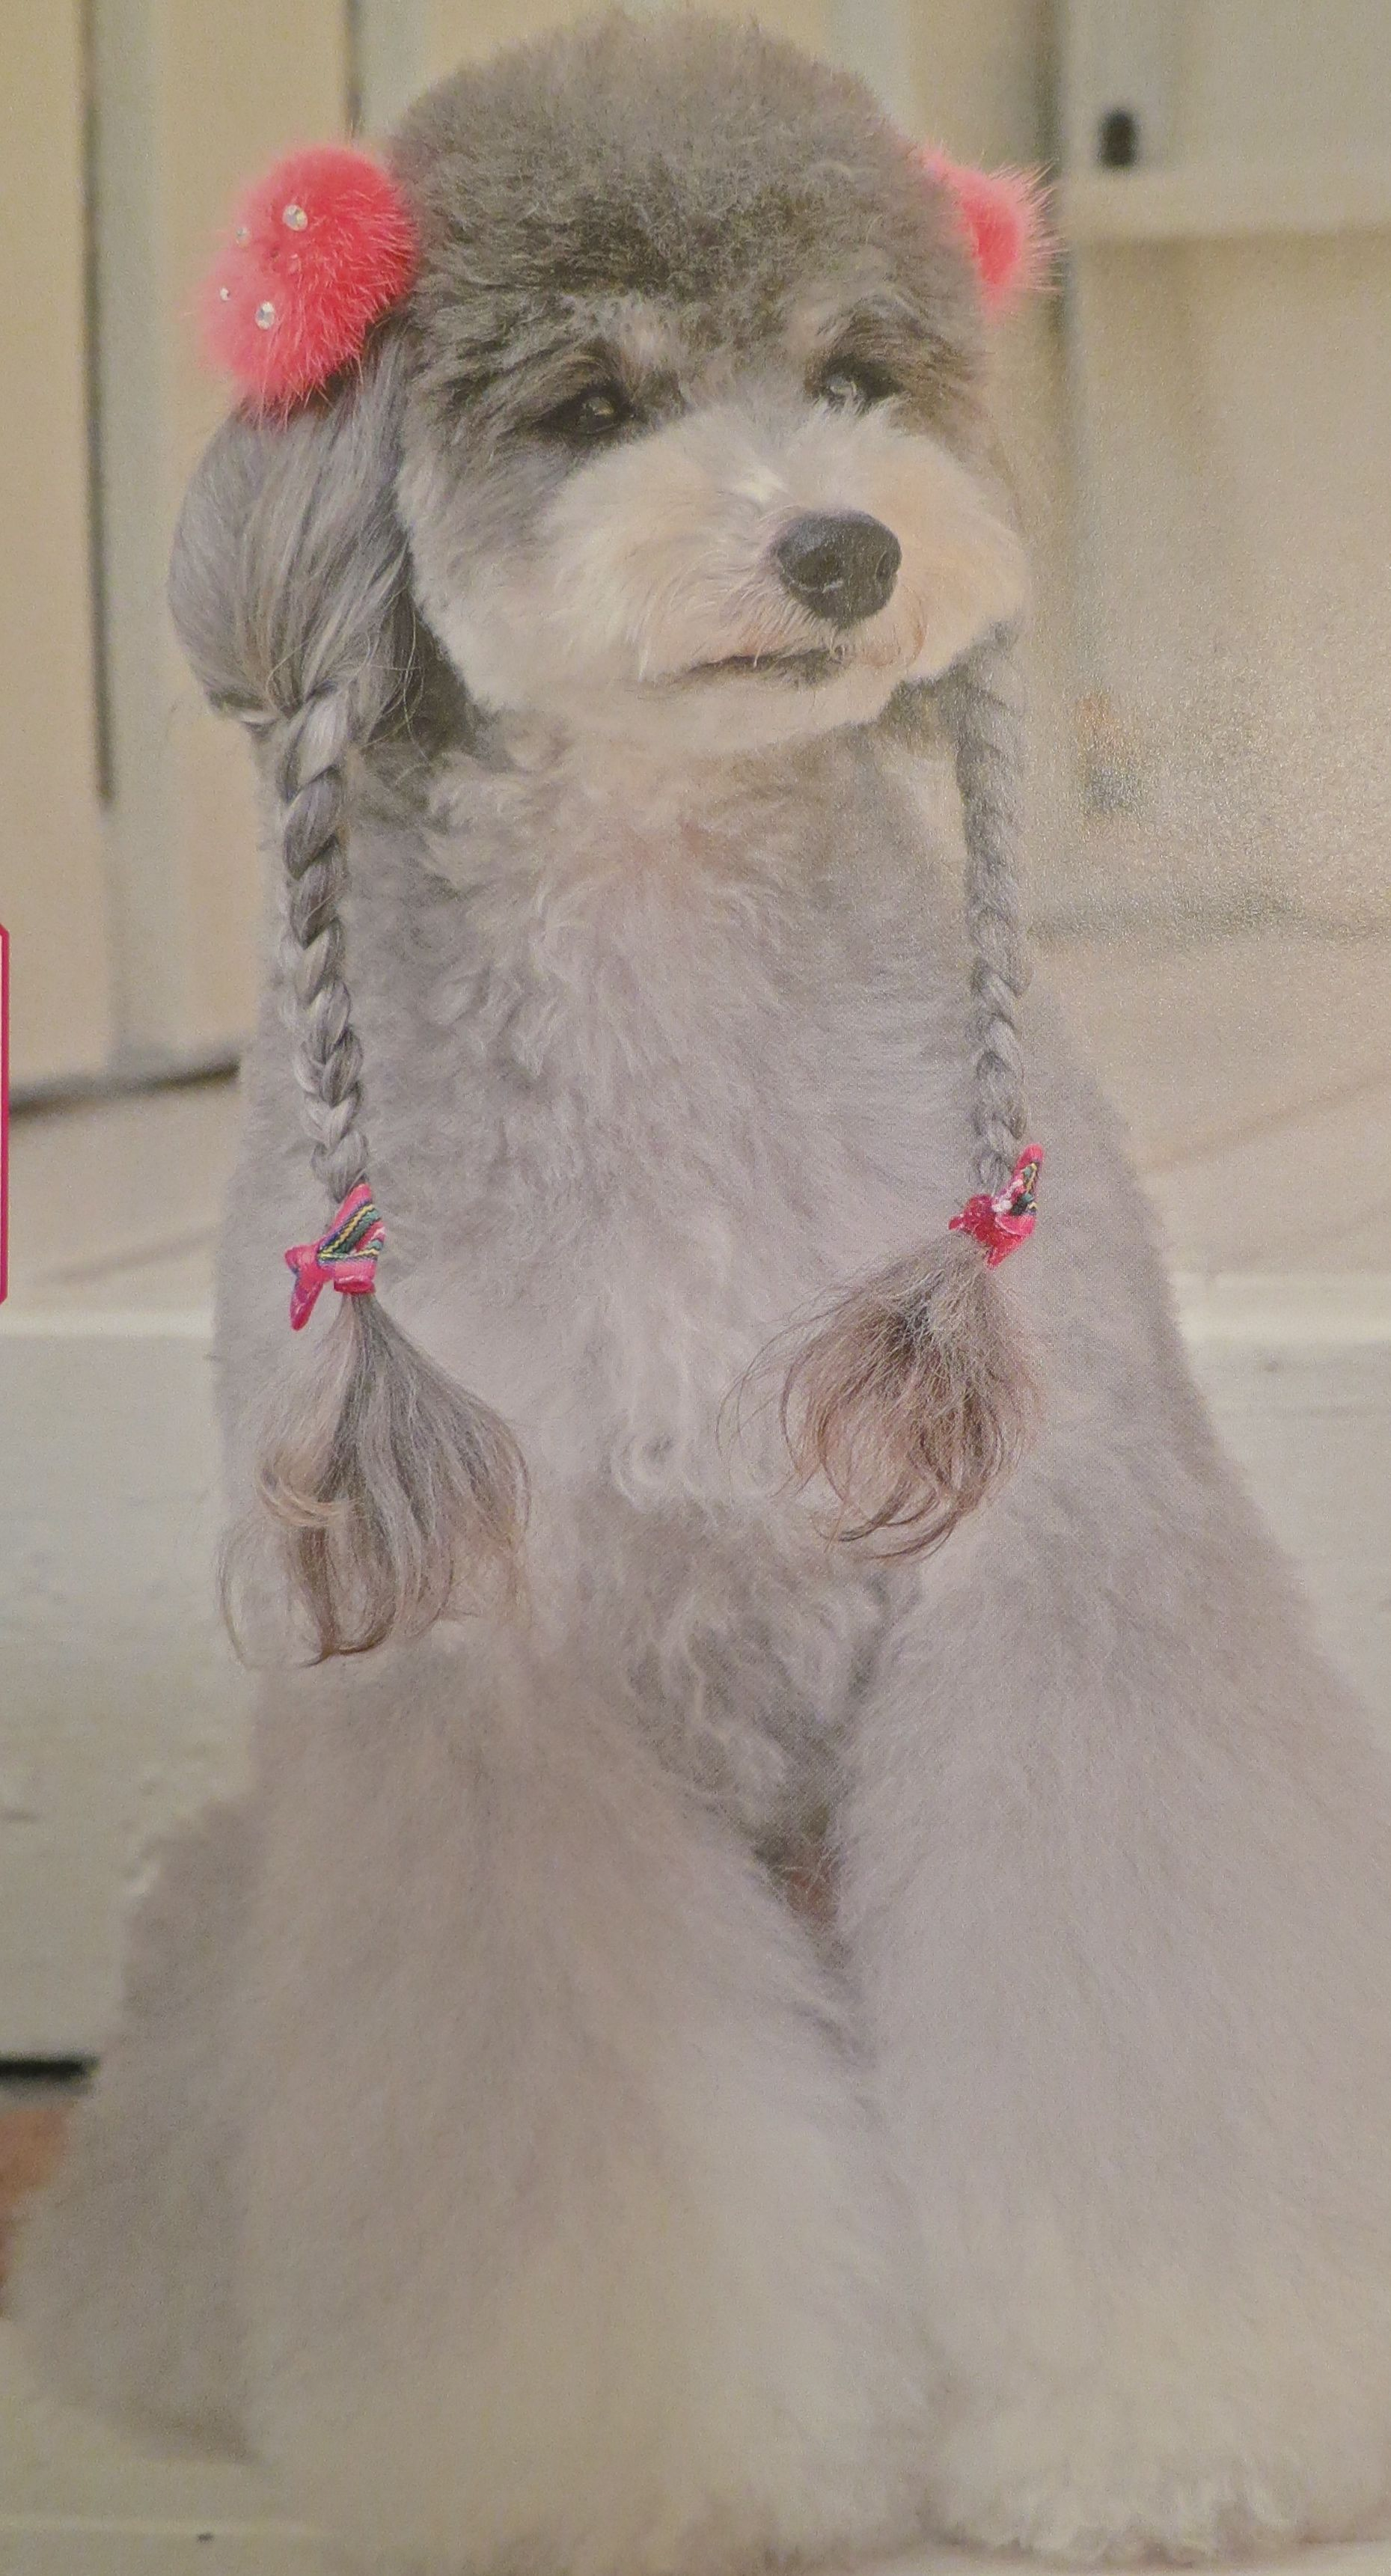 Dog braids grooming style opawz supply pet hair dyepet hair dog braids grooming style opawz supply pet hair dyepet hair chalkpet perfumepet shampoospa products solutioingenieria Image collections